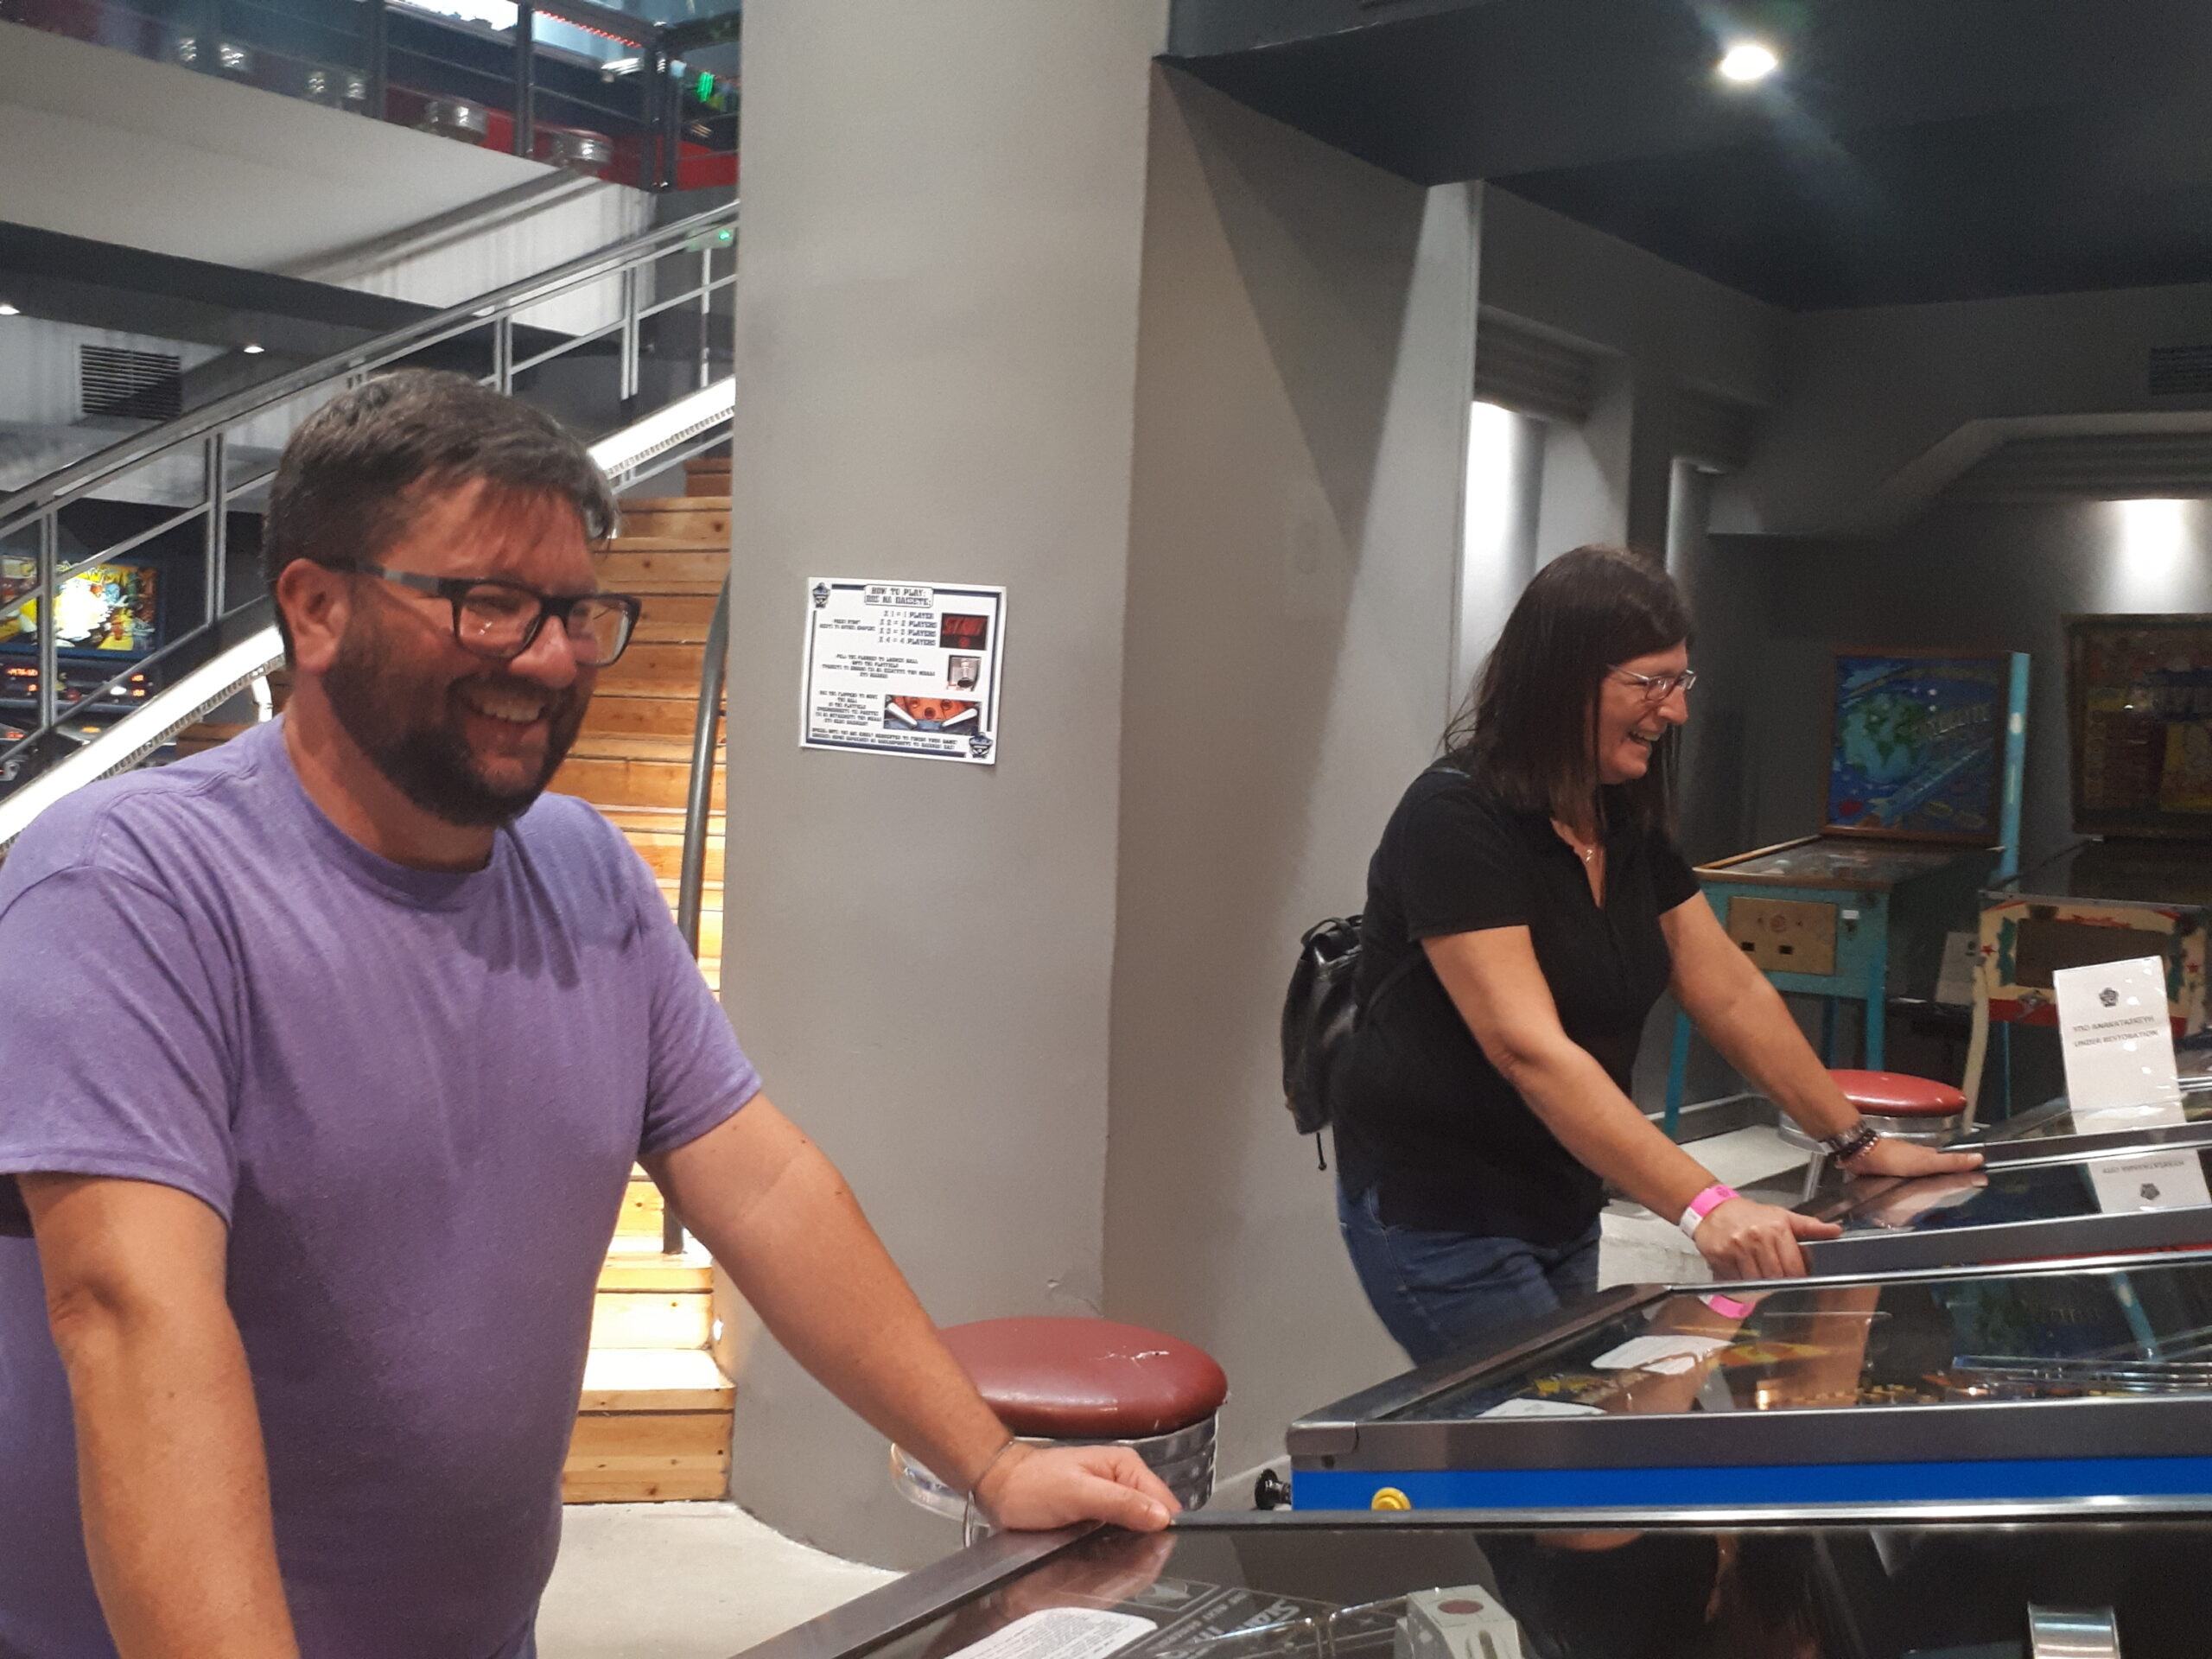 A man and a woman playing on two different pinball machines.